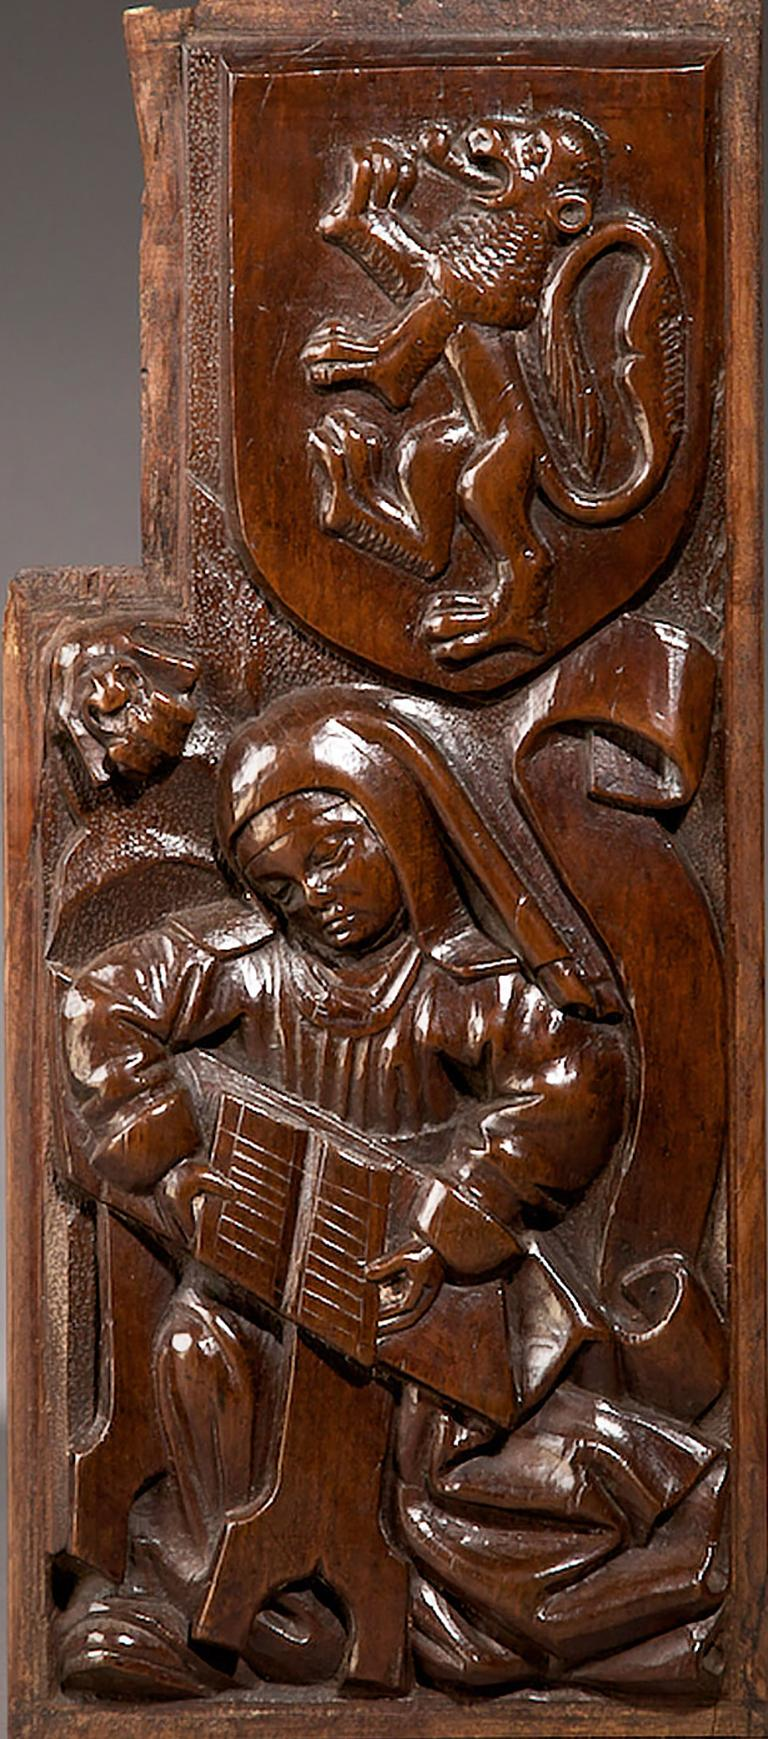 Hand-Carved Tudor Pre Reformation Yew Panels, English, circa 1500-1540 For Sale